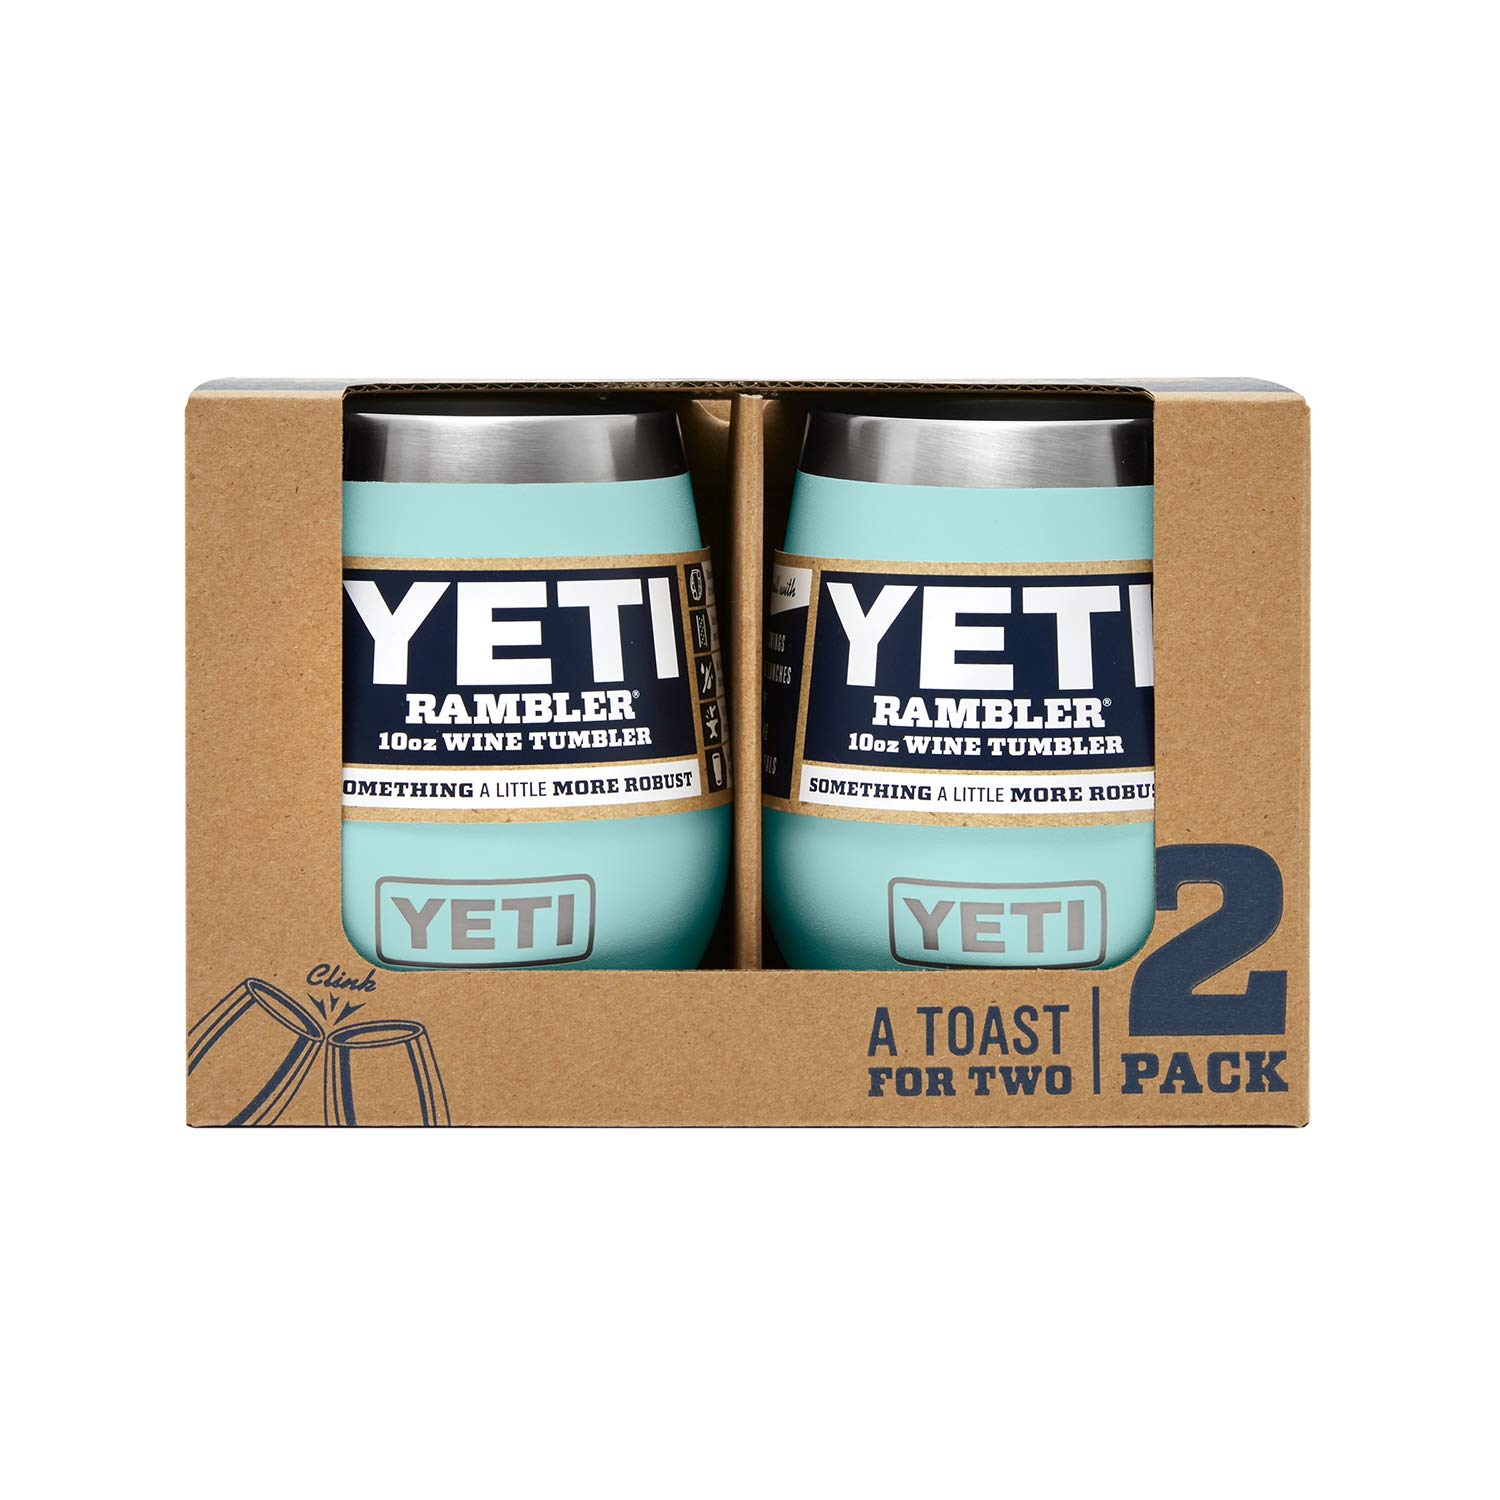 YETI Rambler 10 oz Stainless Steel Vacuum Insulated Wine Tumbler, 2 Pack, Seafoam